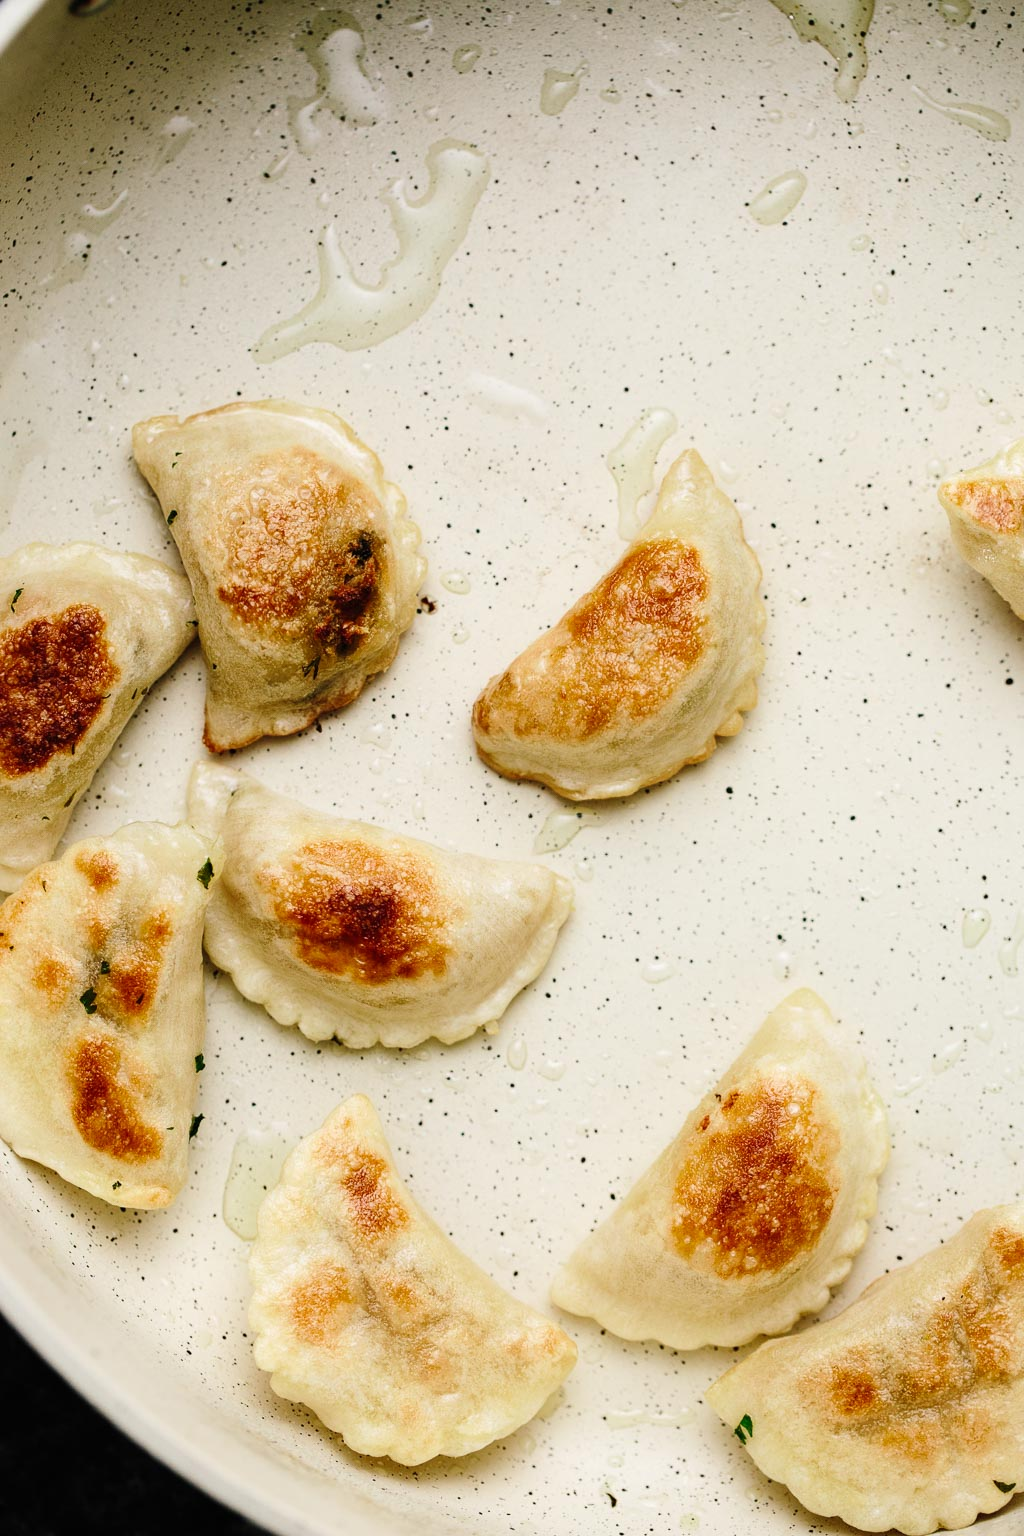 Pan-Fried Nasoya Dumplings